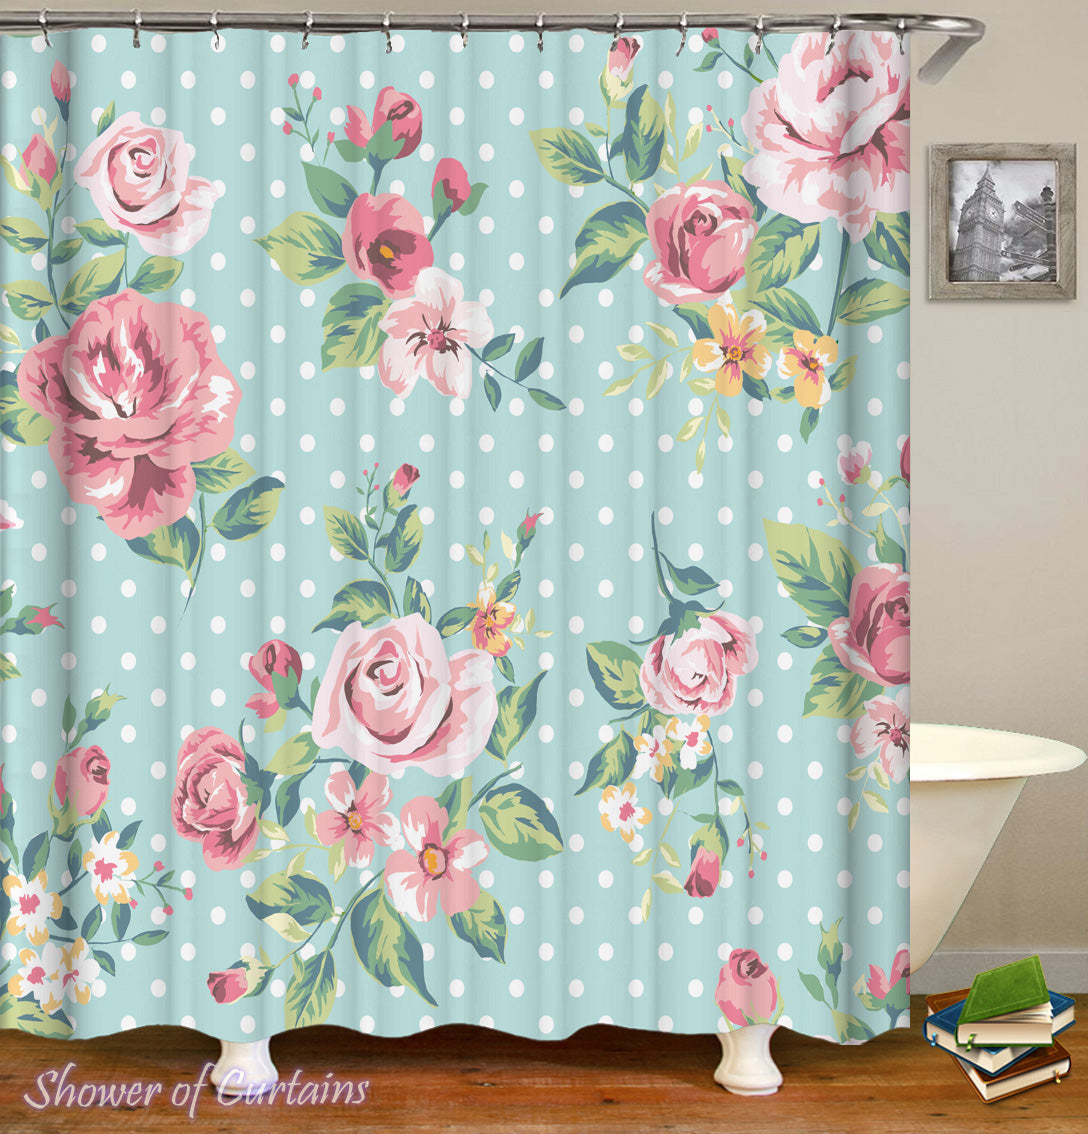 Shower Curtains Classic Floral Over Polka Dots Shower Of Curtains